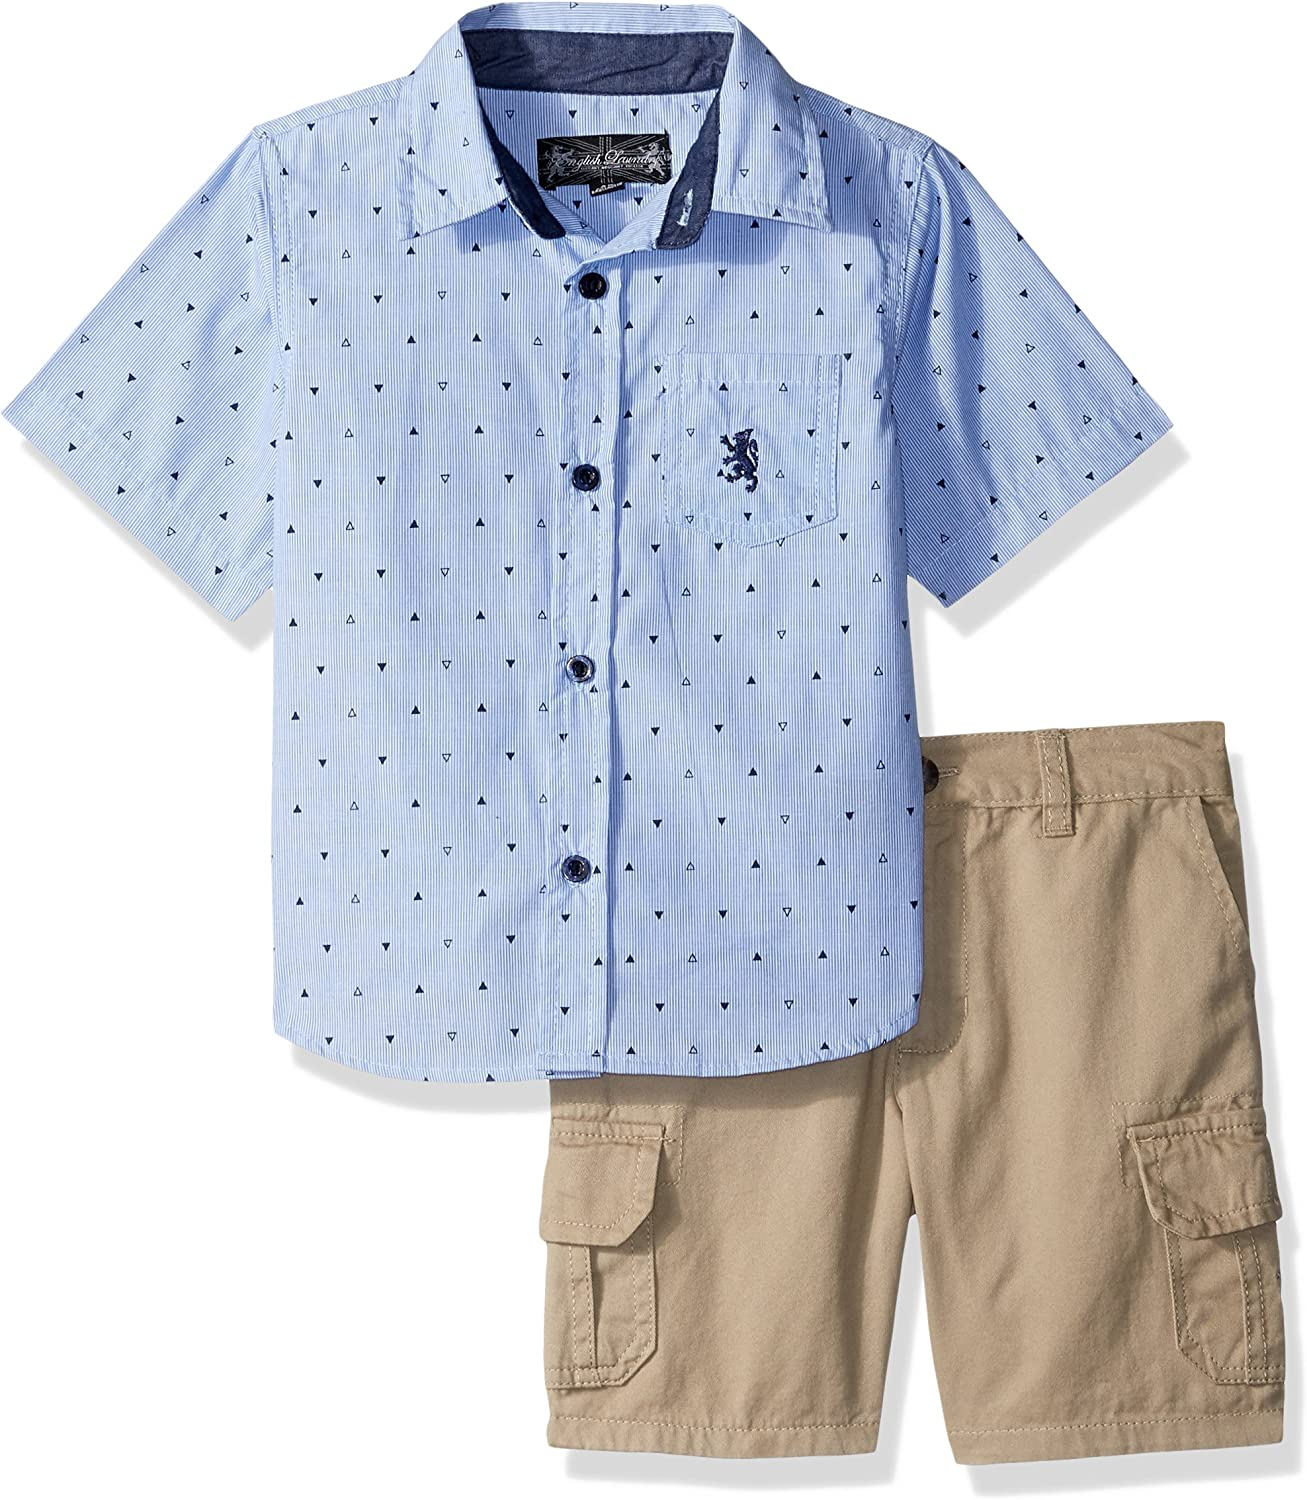 English Laundry Boys Sleeve Print Woven Shirt and Twill Cargo Short